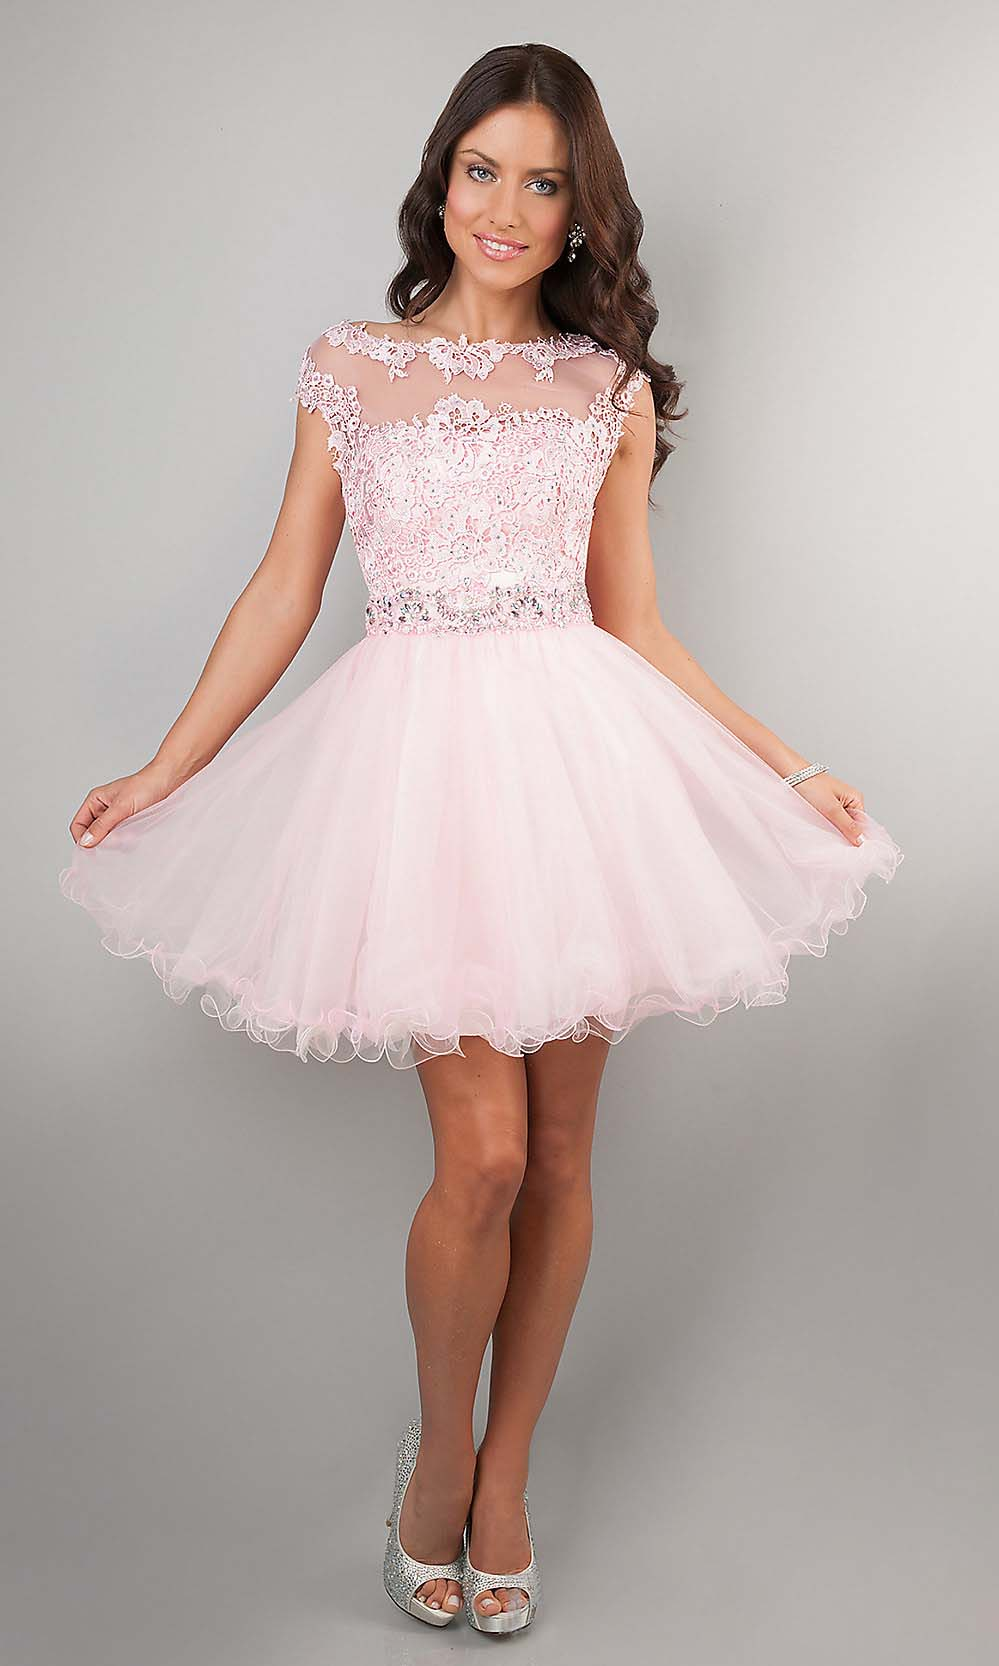 Short Dresses For Short Ladies : Make You Look Like A Princess